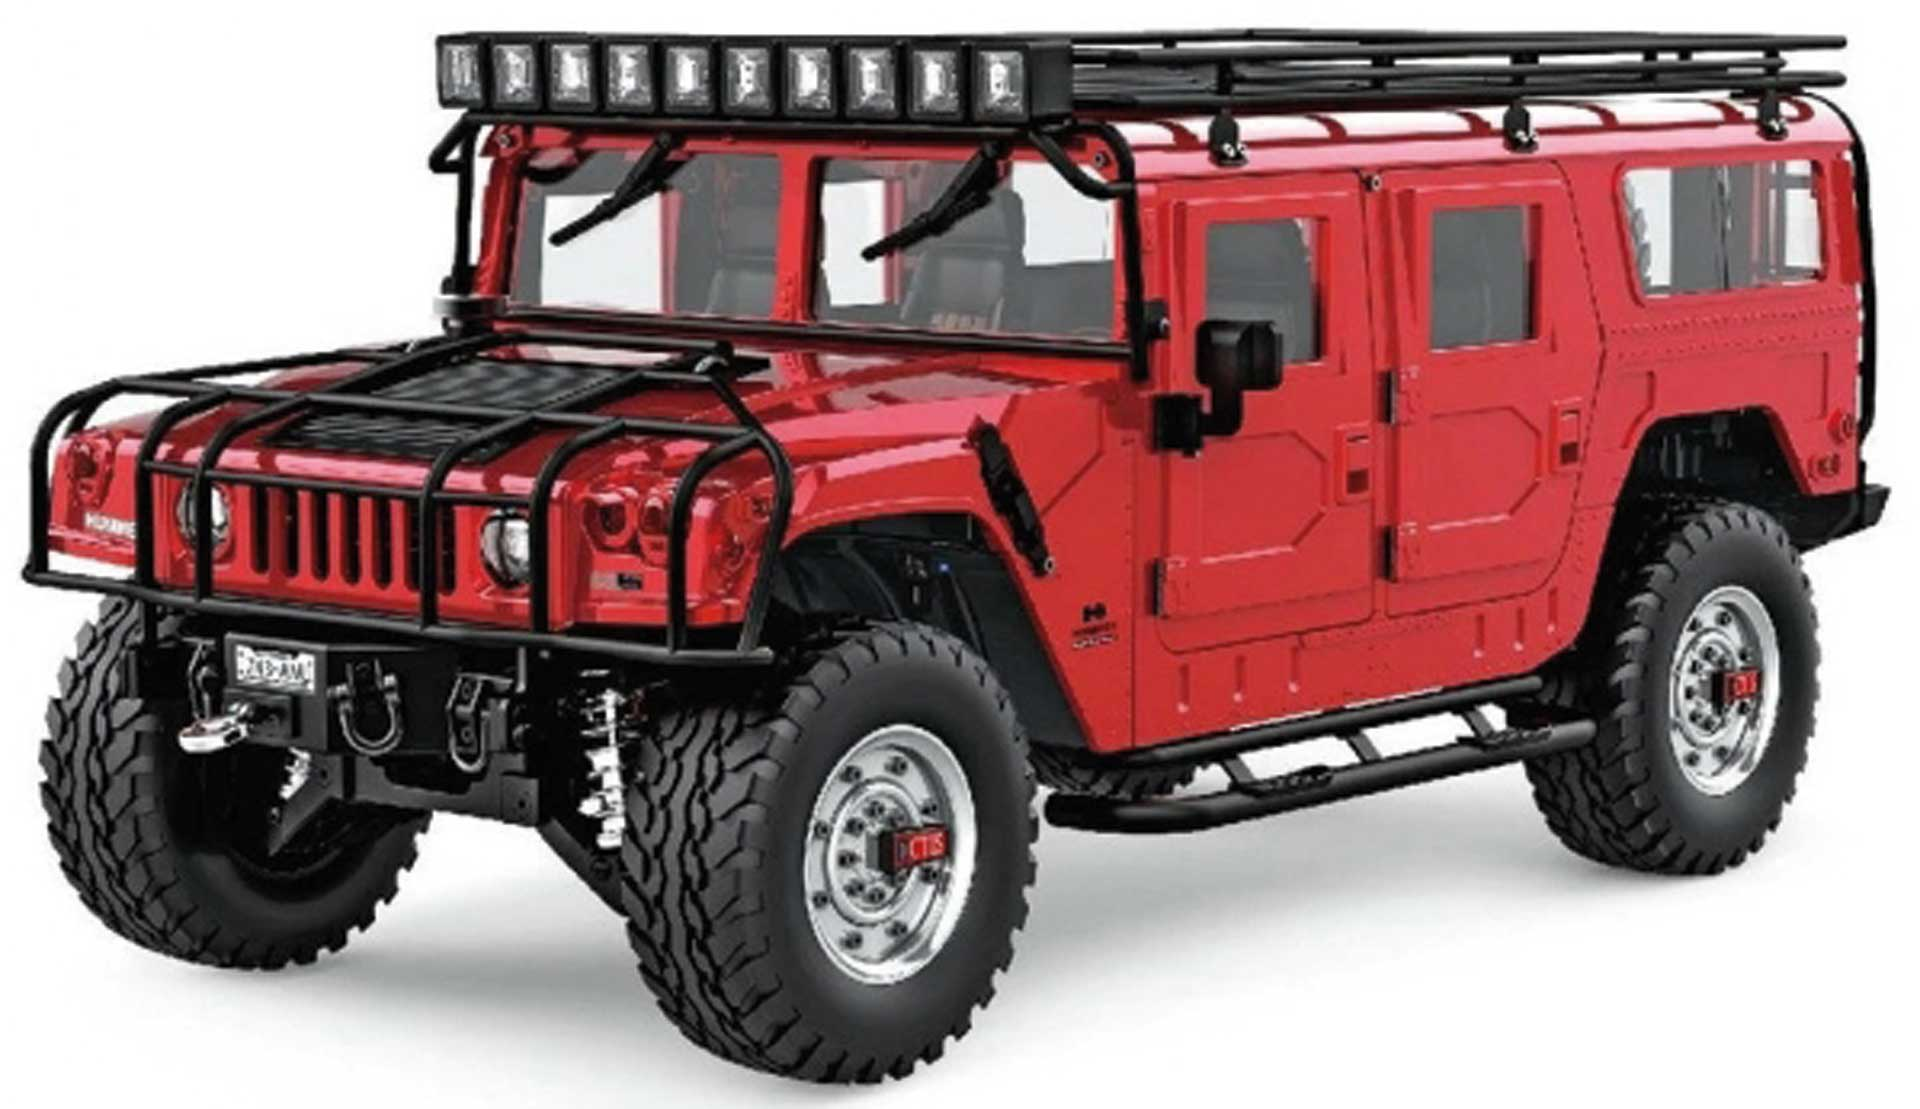 FM-ELECTRICS Hummer H1 1/10 XL Scale SUV rot 4WD RTR